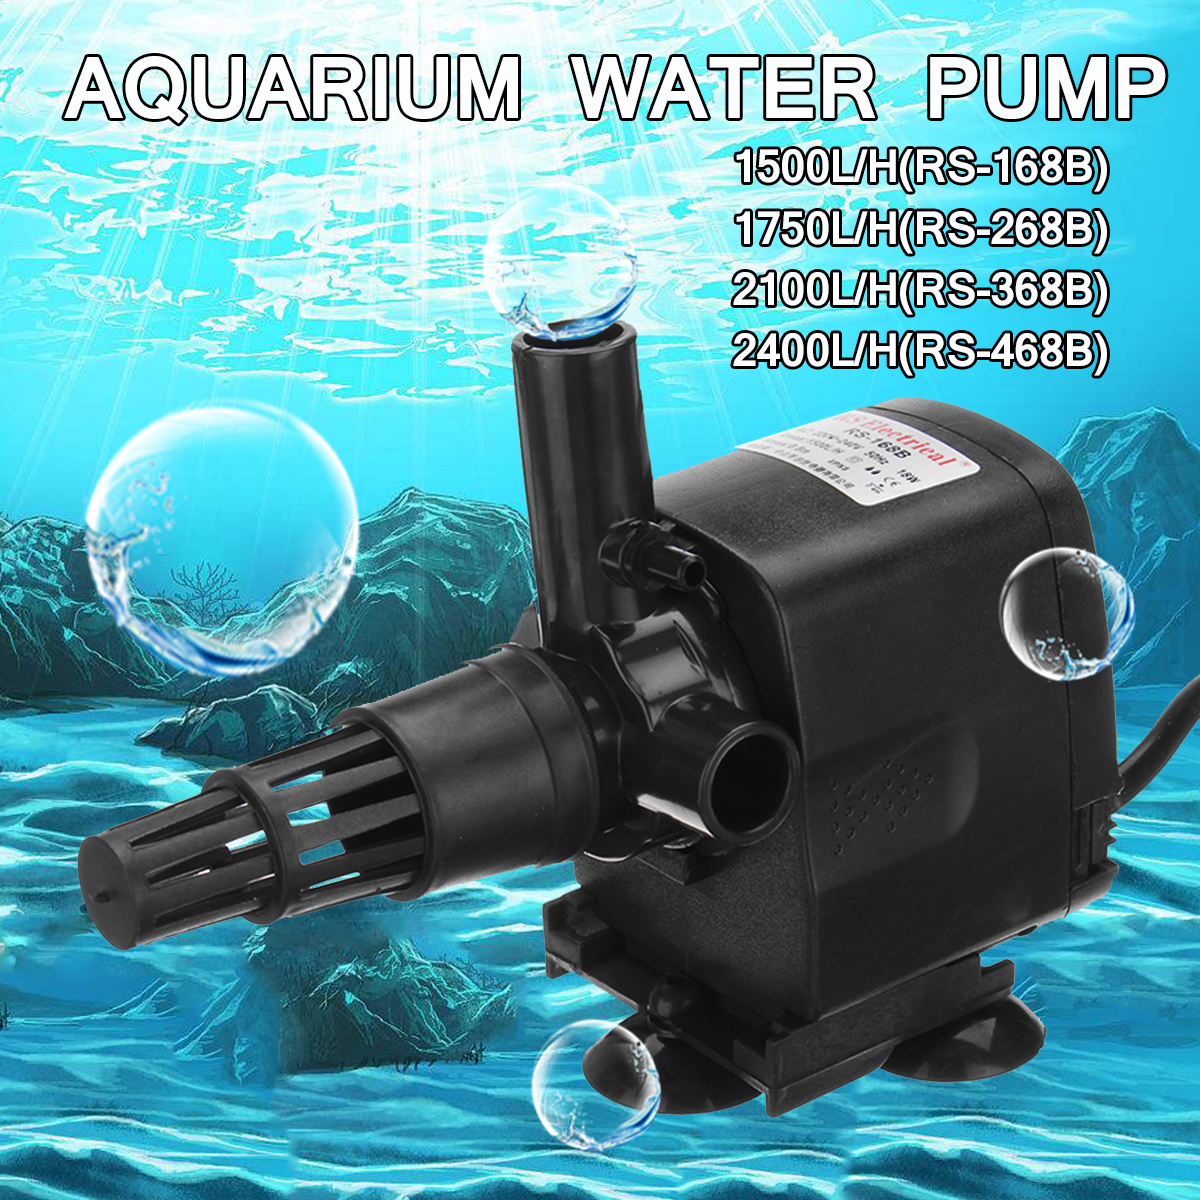 18/20/30/40W Mini Submersible Water Pump 220V Fish Pond Aquarium Tank Fountain Oxygen Air Compressor Aerator Air Flow Maker Pump bn44 00428b pd55b2 bhs good working tested